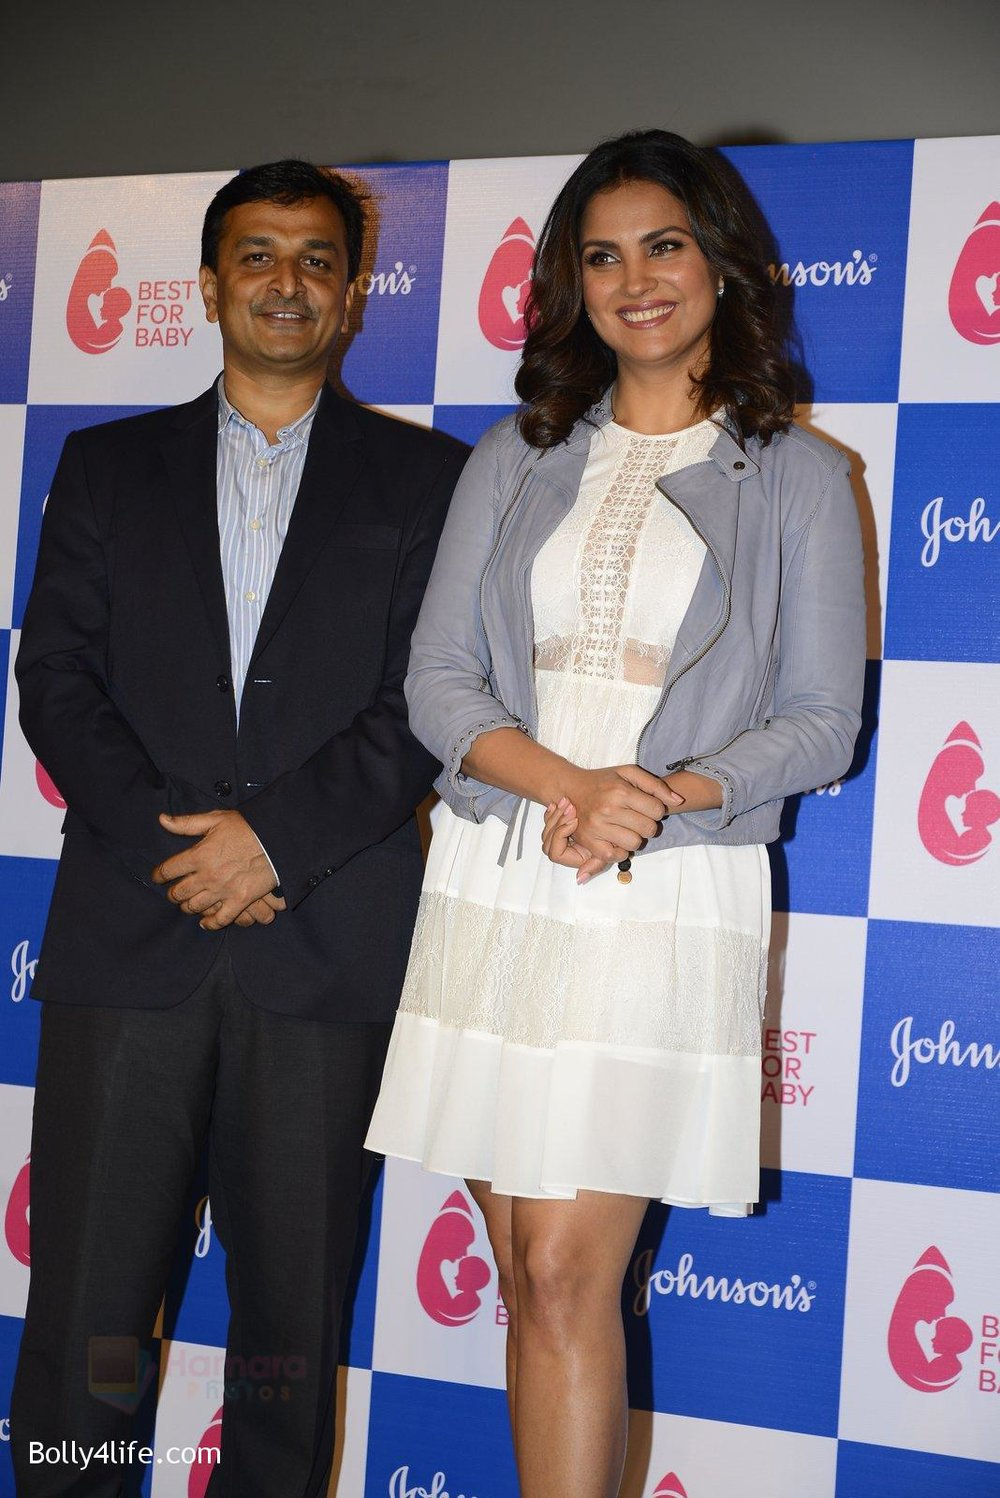 Lara-Dutta-at-baby-youtube-channel-launch-by-johnsons-on-20th-Oct-2016-15.jpg